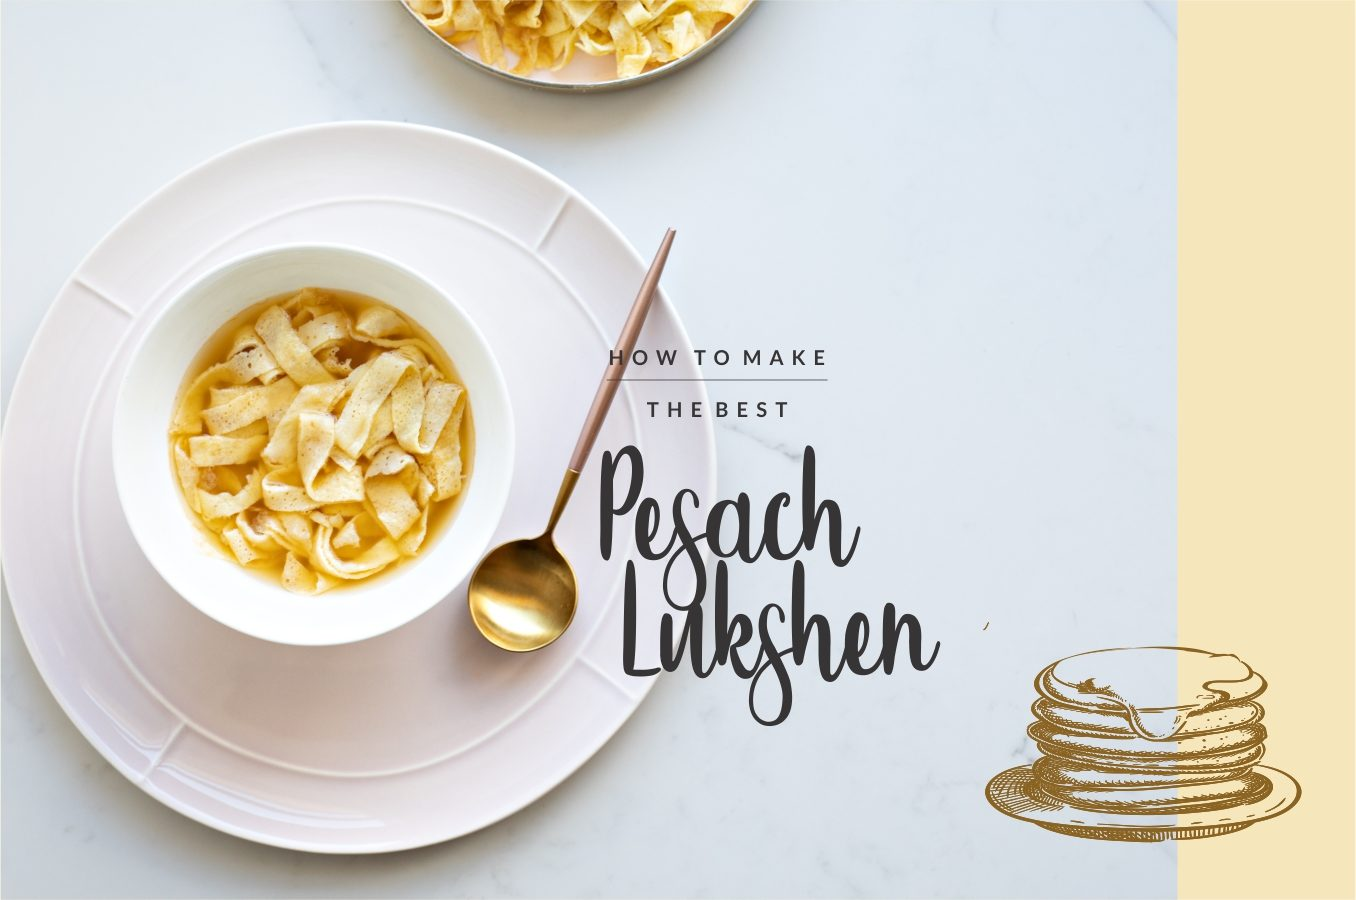 Basics: How To Make Pesach Lukshen (aka Egg Noodles). Use this lukshen recipe for your blintzes and crepes as well.